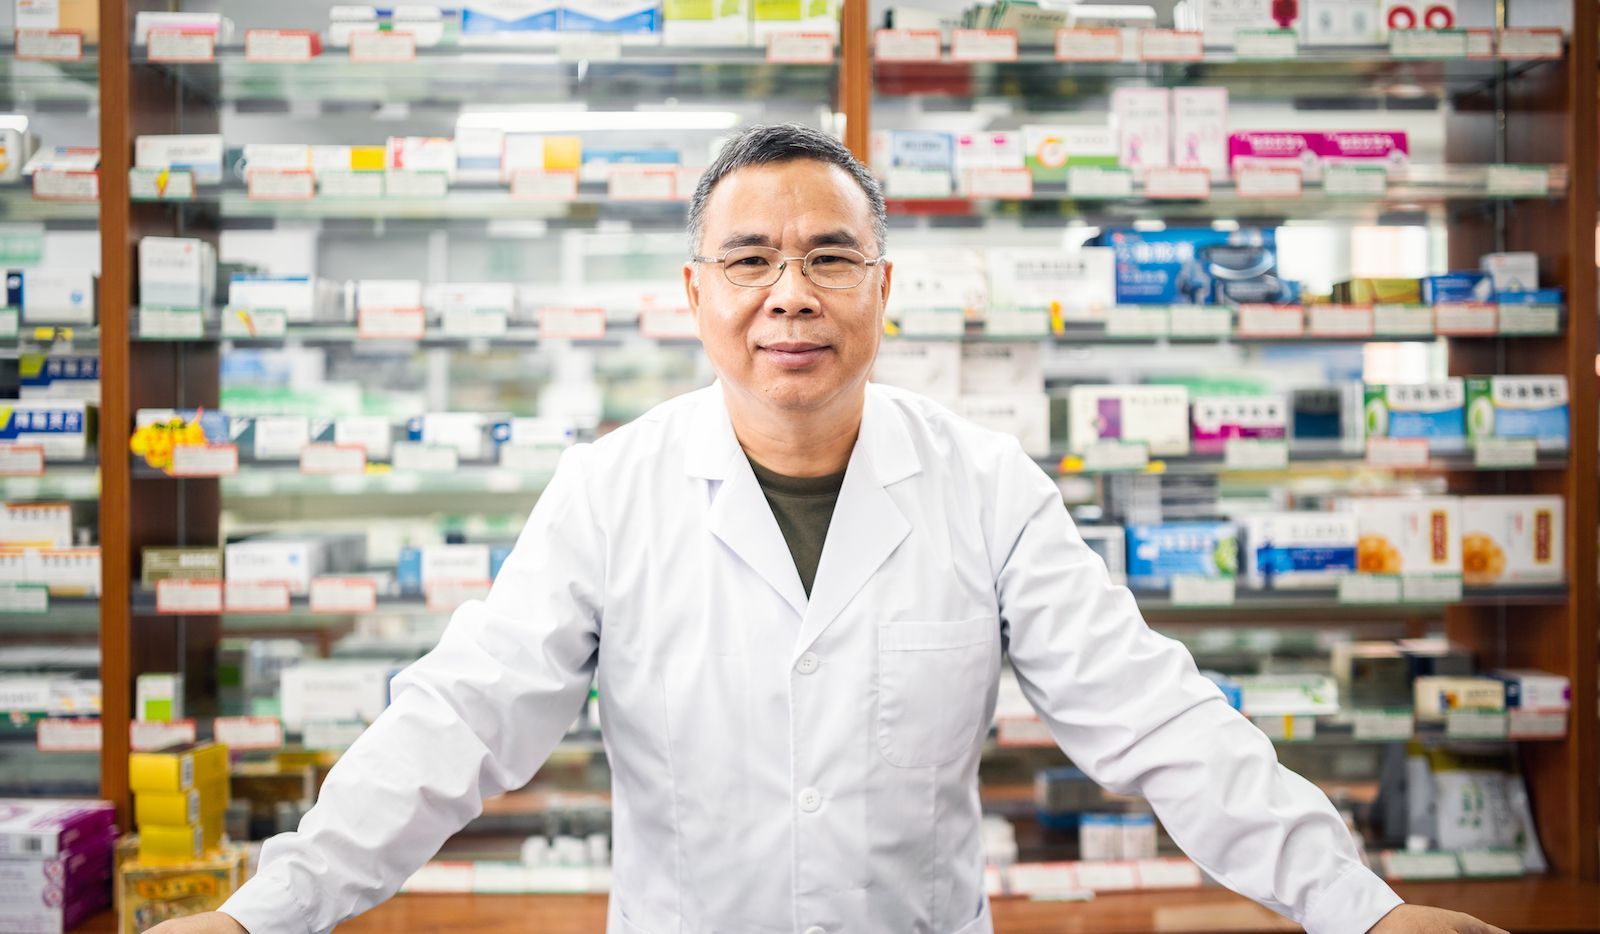 A pharmacist is an easy-to-access medical professional. Never hesitate to ask your pharmacist questions about your prescriptions or over-the-counter meds.